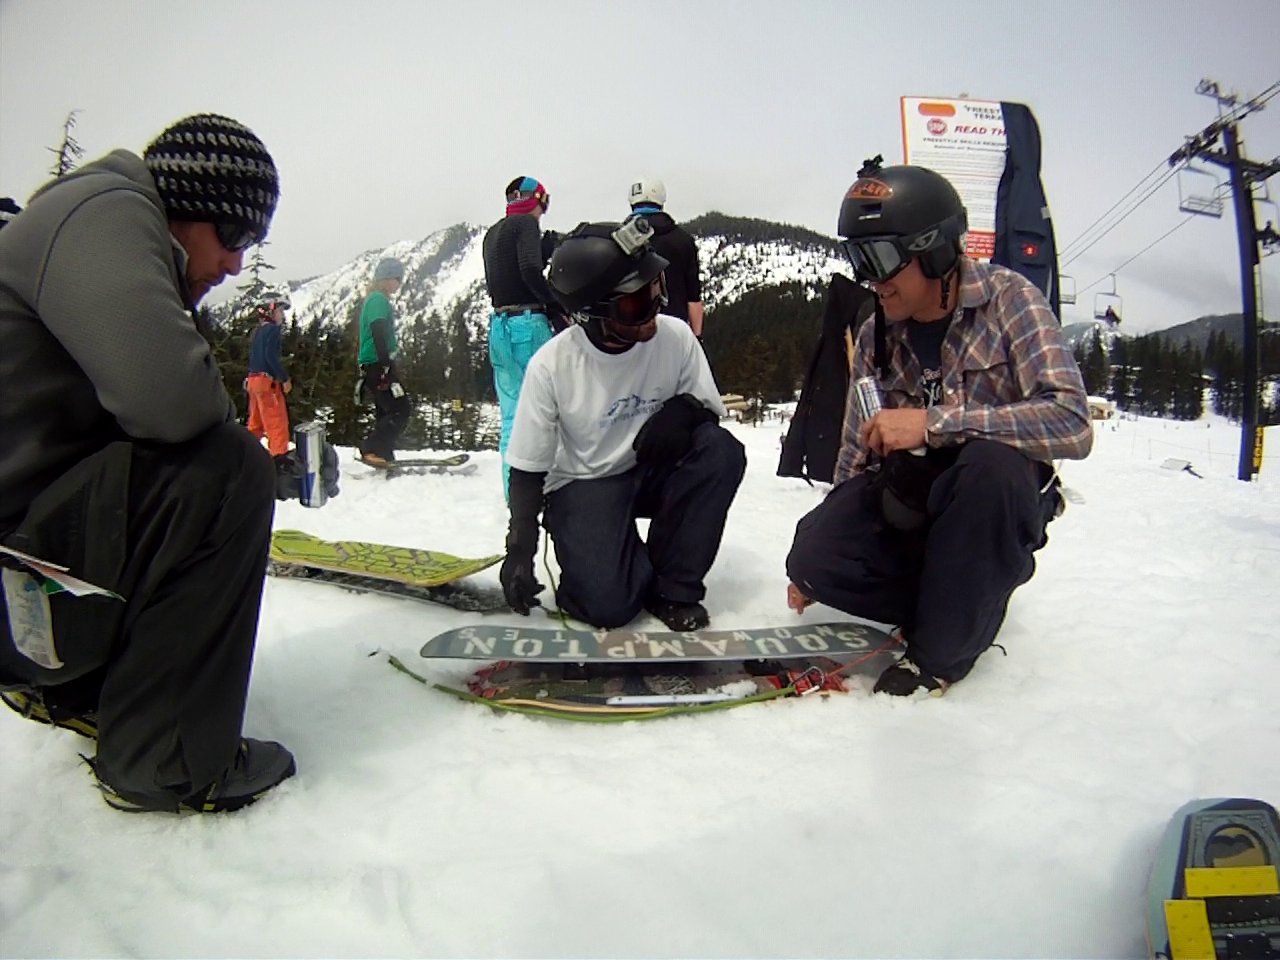 Shop talk with Jesse from Squampton Snowskates and Bryce from Boyd Hill